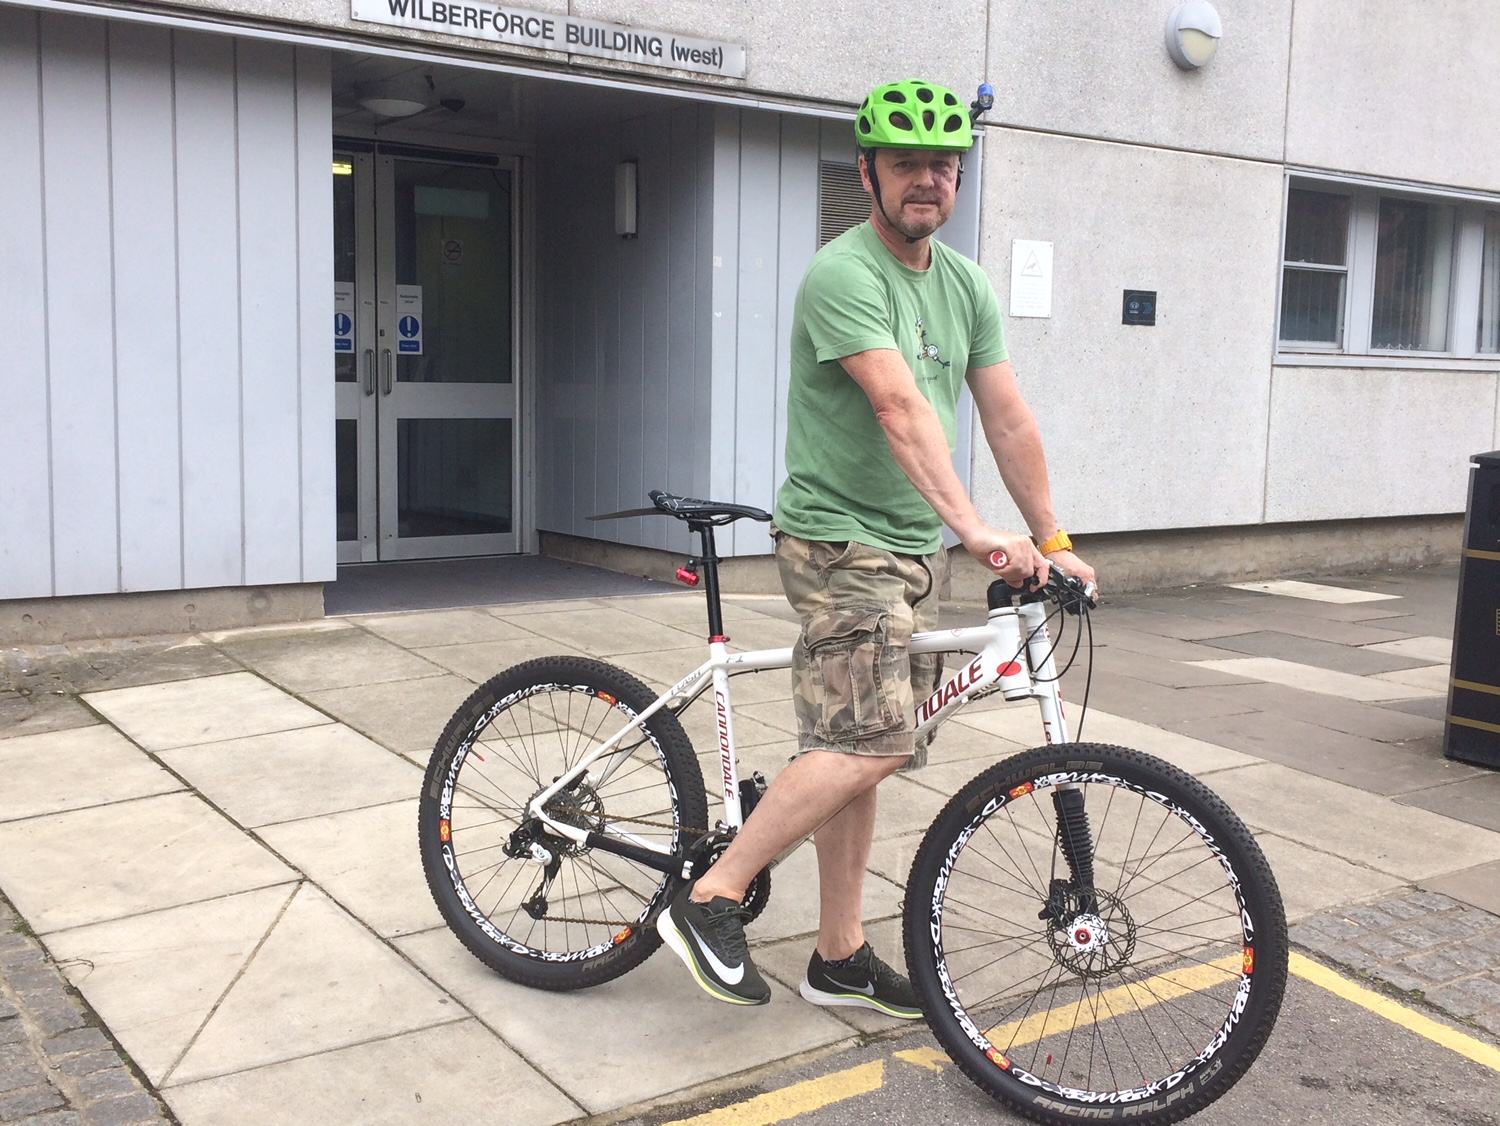 Physiotherapy and compensation for cyclist who suffered broken wrist when hit by car